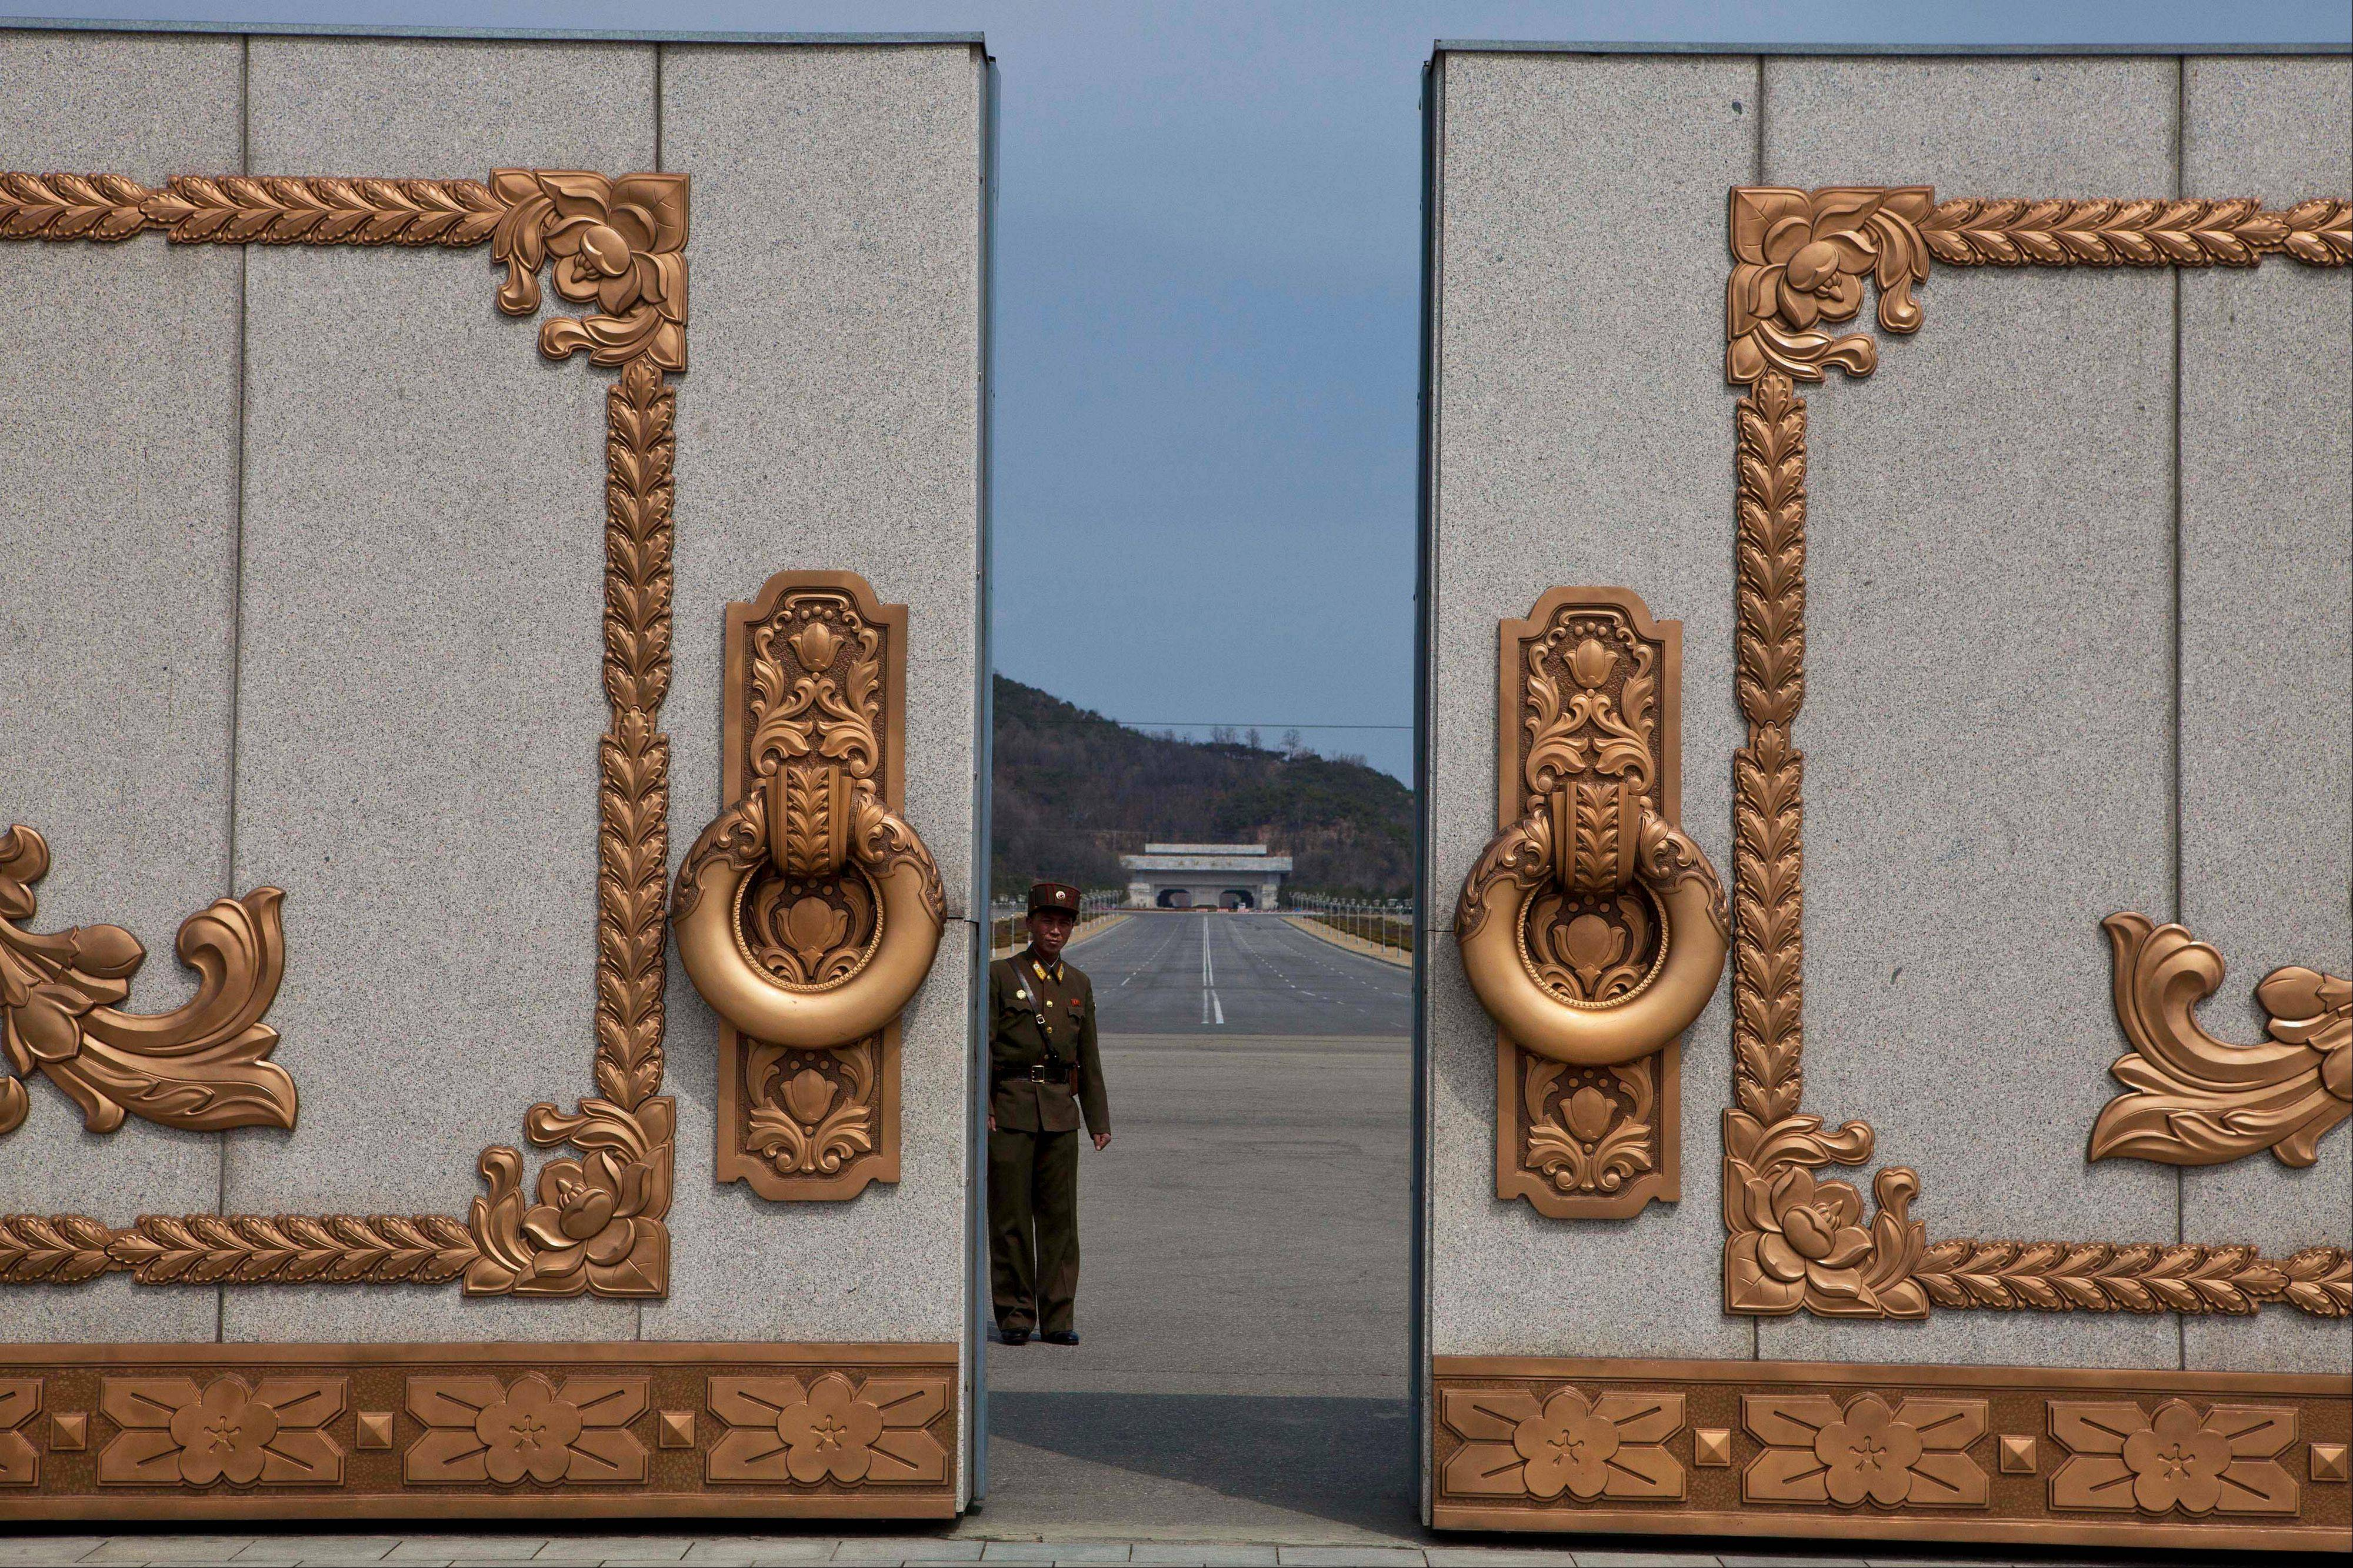 A North Korean soldier guarding the entrance to Pyongyang's Kumsusan mausoleum, where the bodies of the late leaders Kim Il Sung and Kim Jong Il lie embalmed, looks back through the doors of the main gate Monday. North Koreans turned out on Monday to mark the 101st birthday of Kim Il Sung.